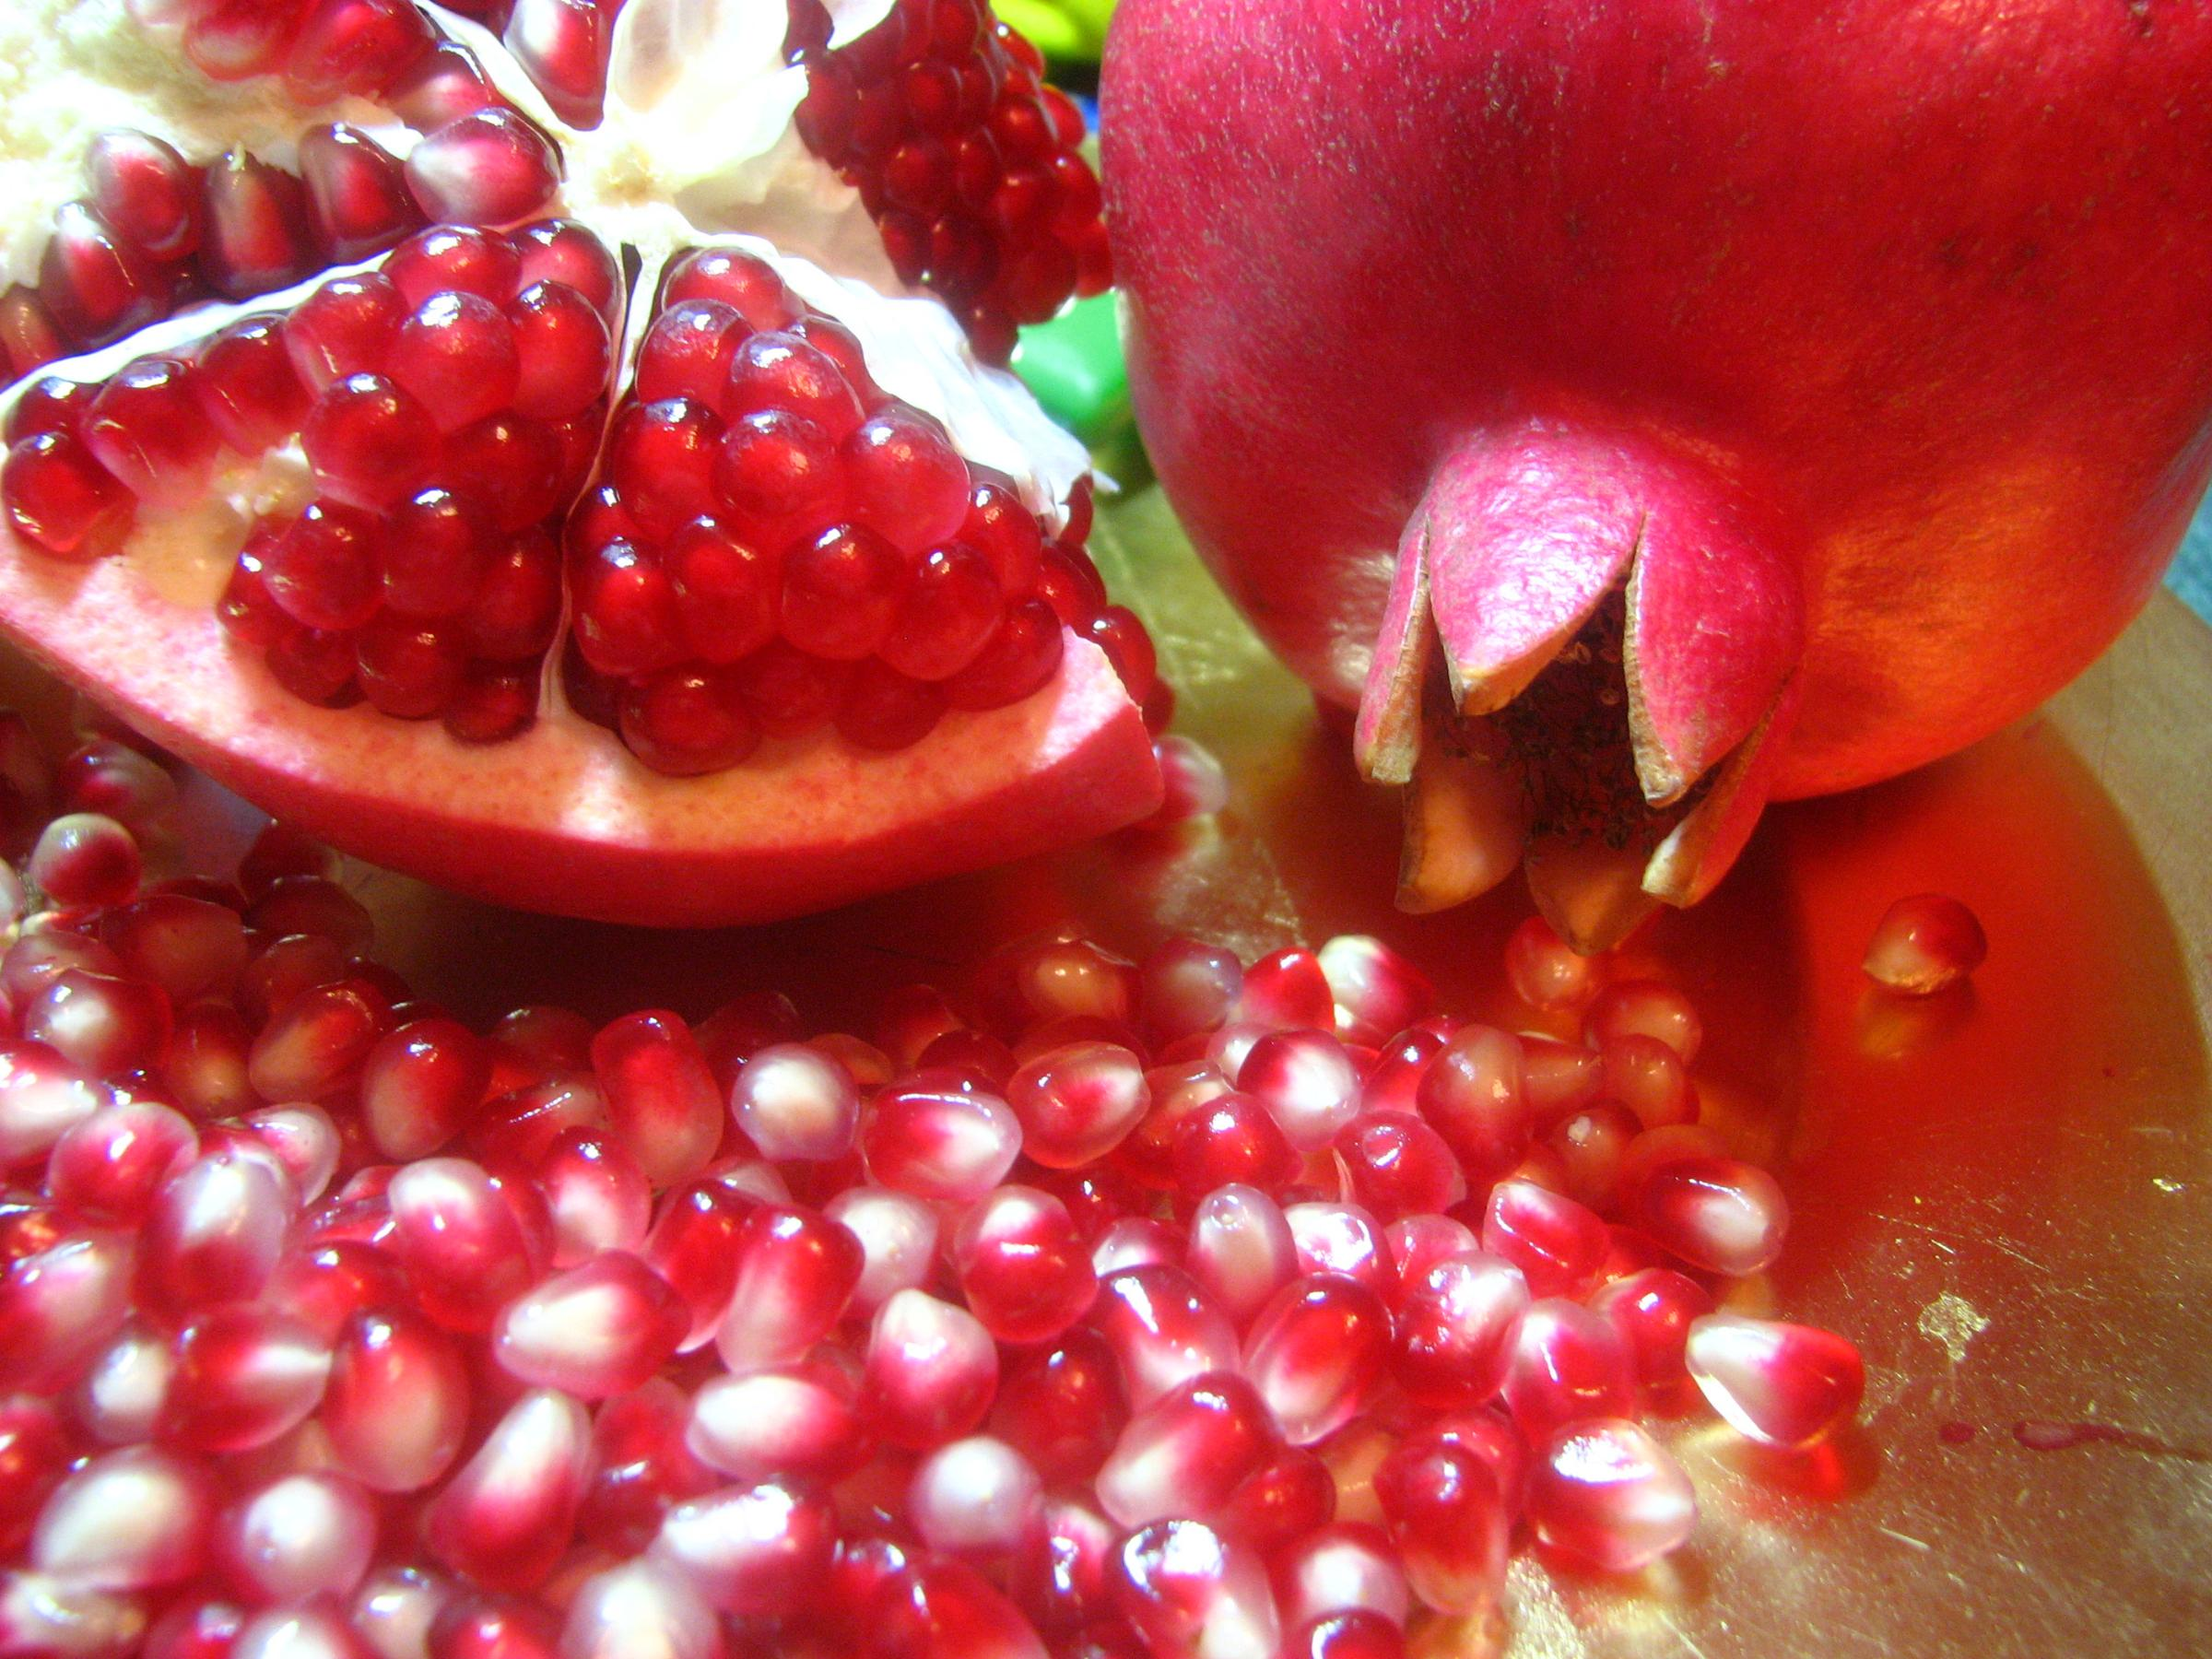 Cool Pomegranate Fruit Wallpaper Desktop Wallpaper with 2400x1800 2400x1800